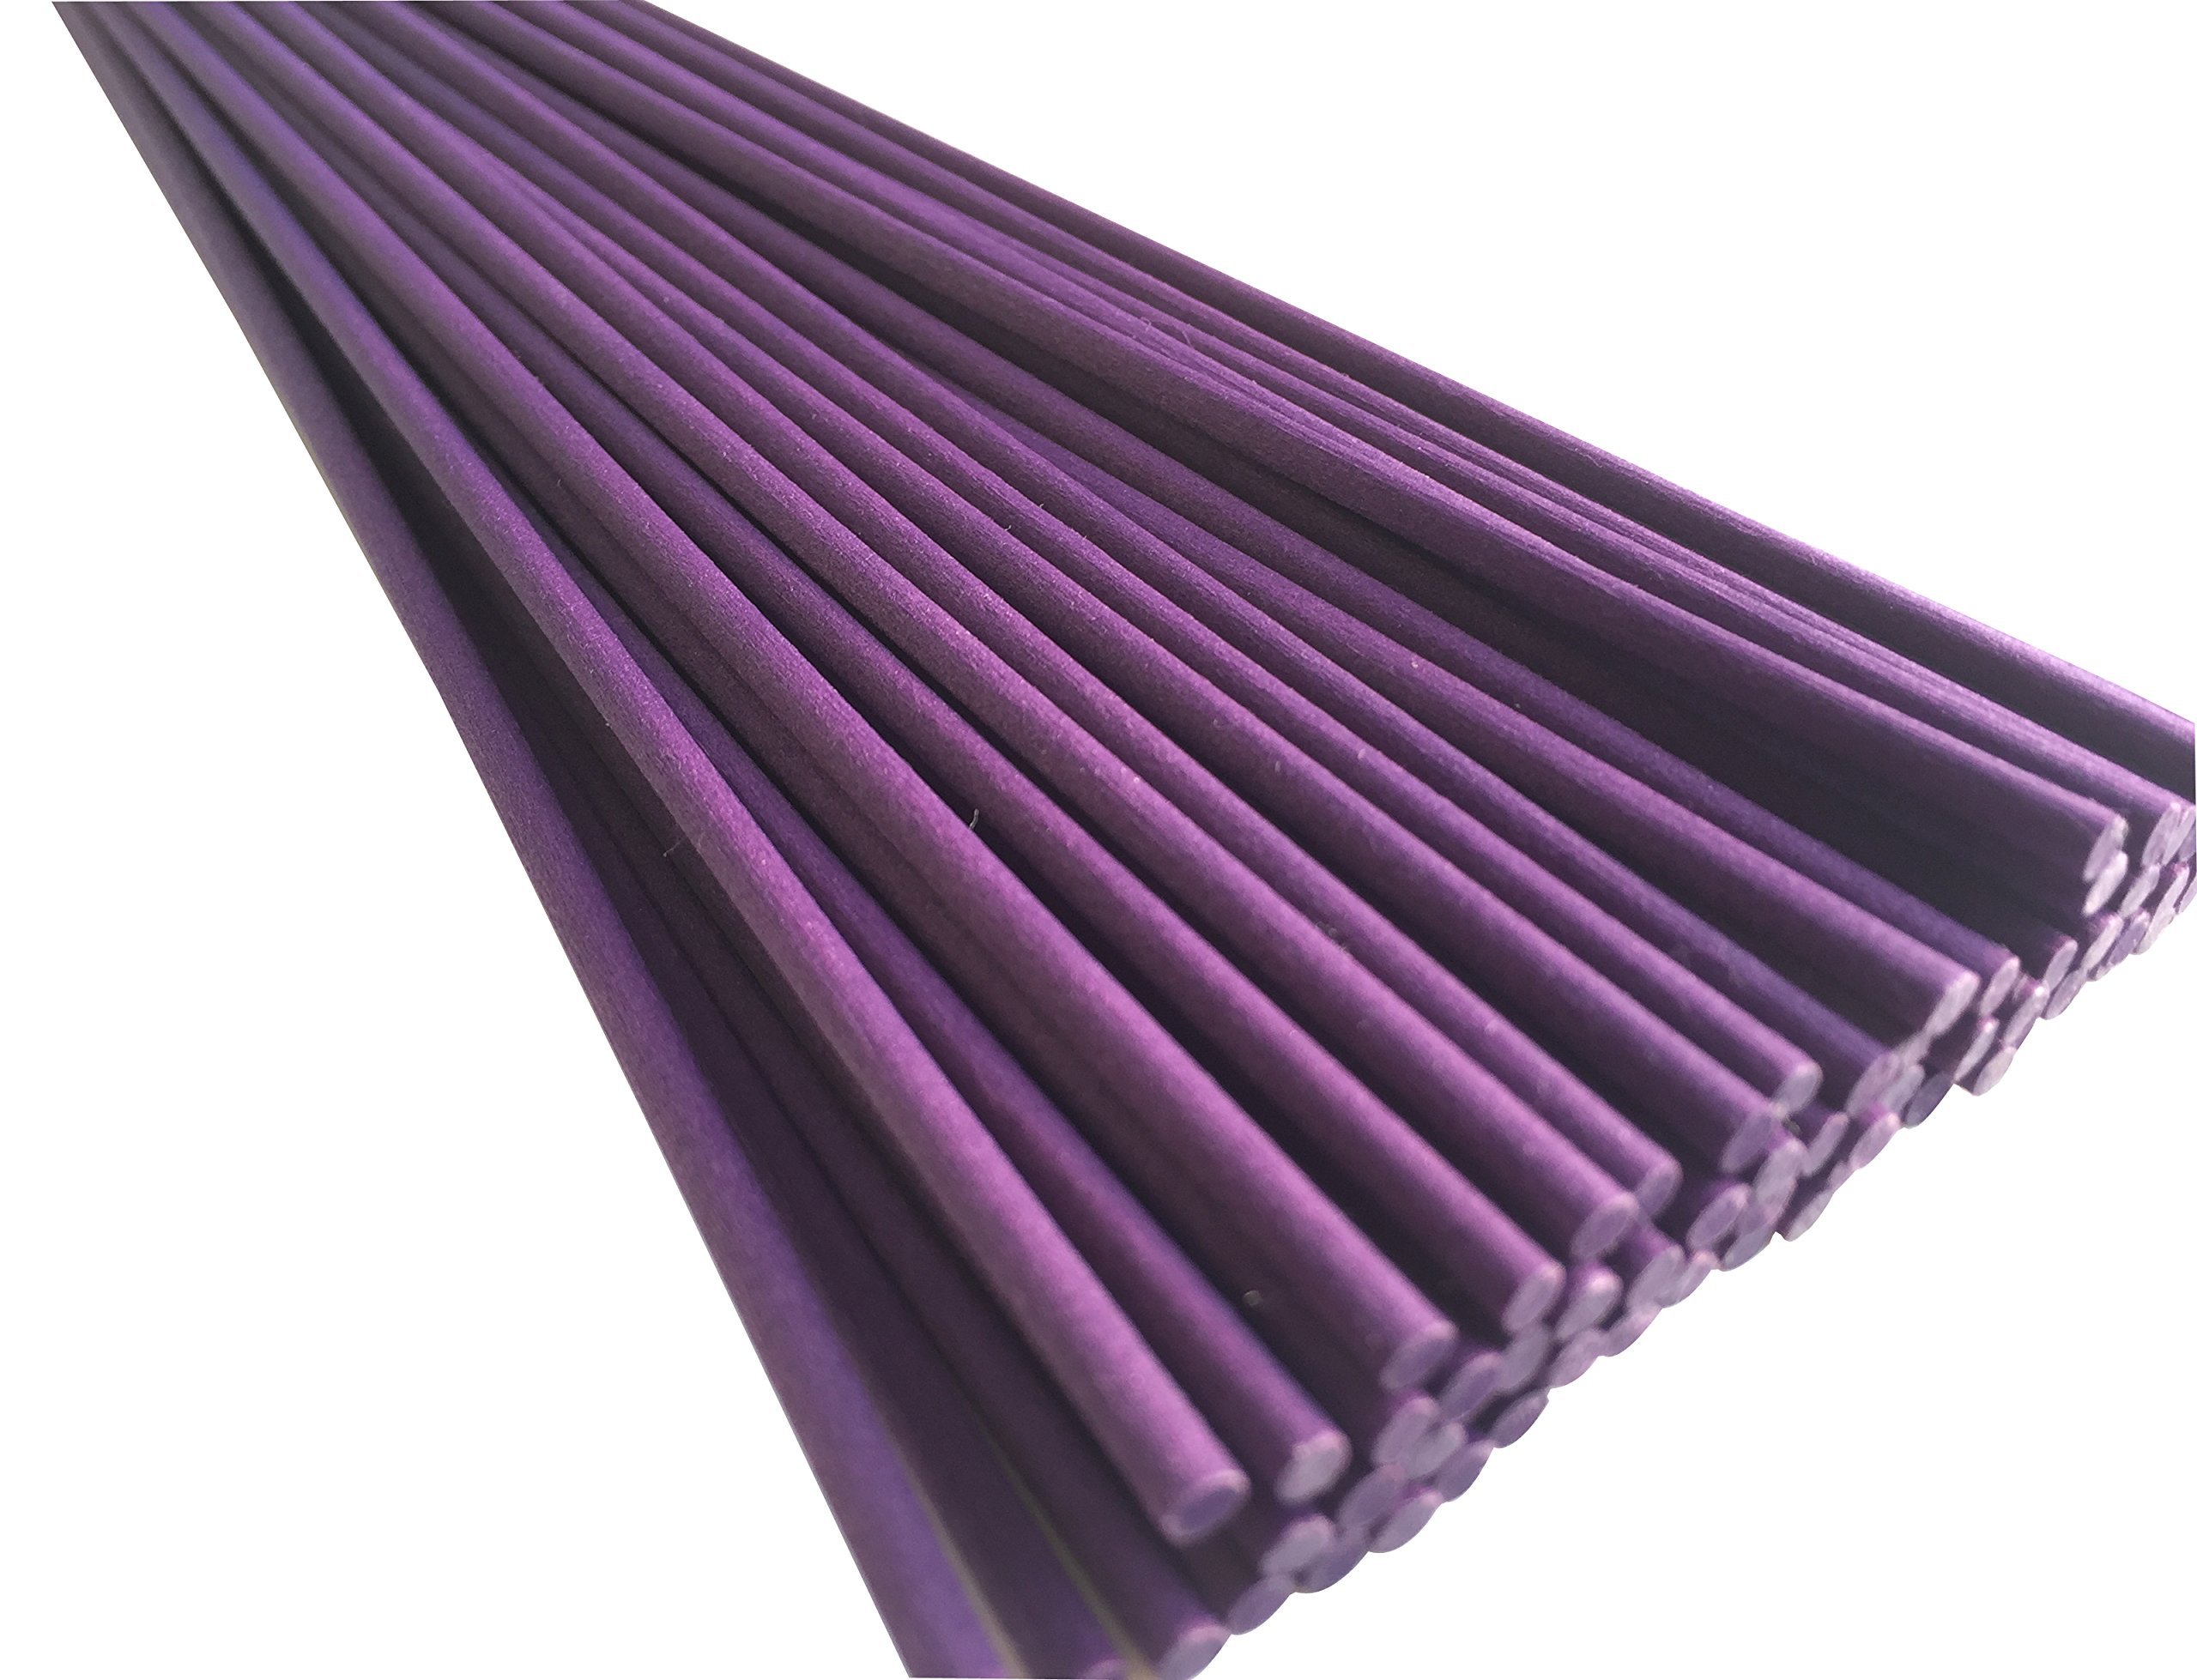 Breath Me TM Reed Diffuser Fiber Sticks,Ideal Replacements for Room Fragrance Diffusers 12'' X 3mm-Deep Purple(100 Pcs)